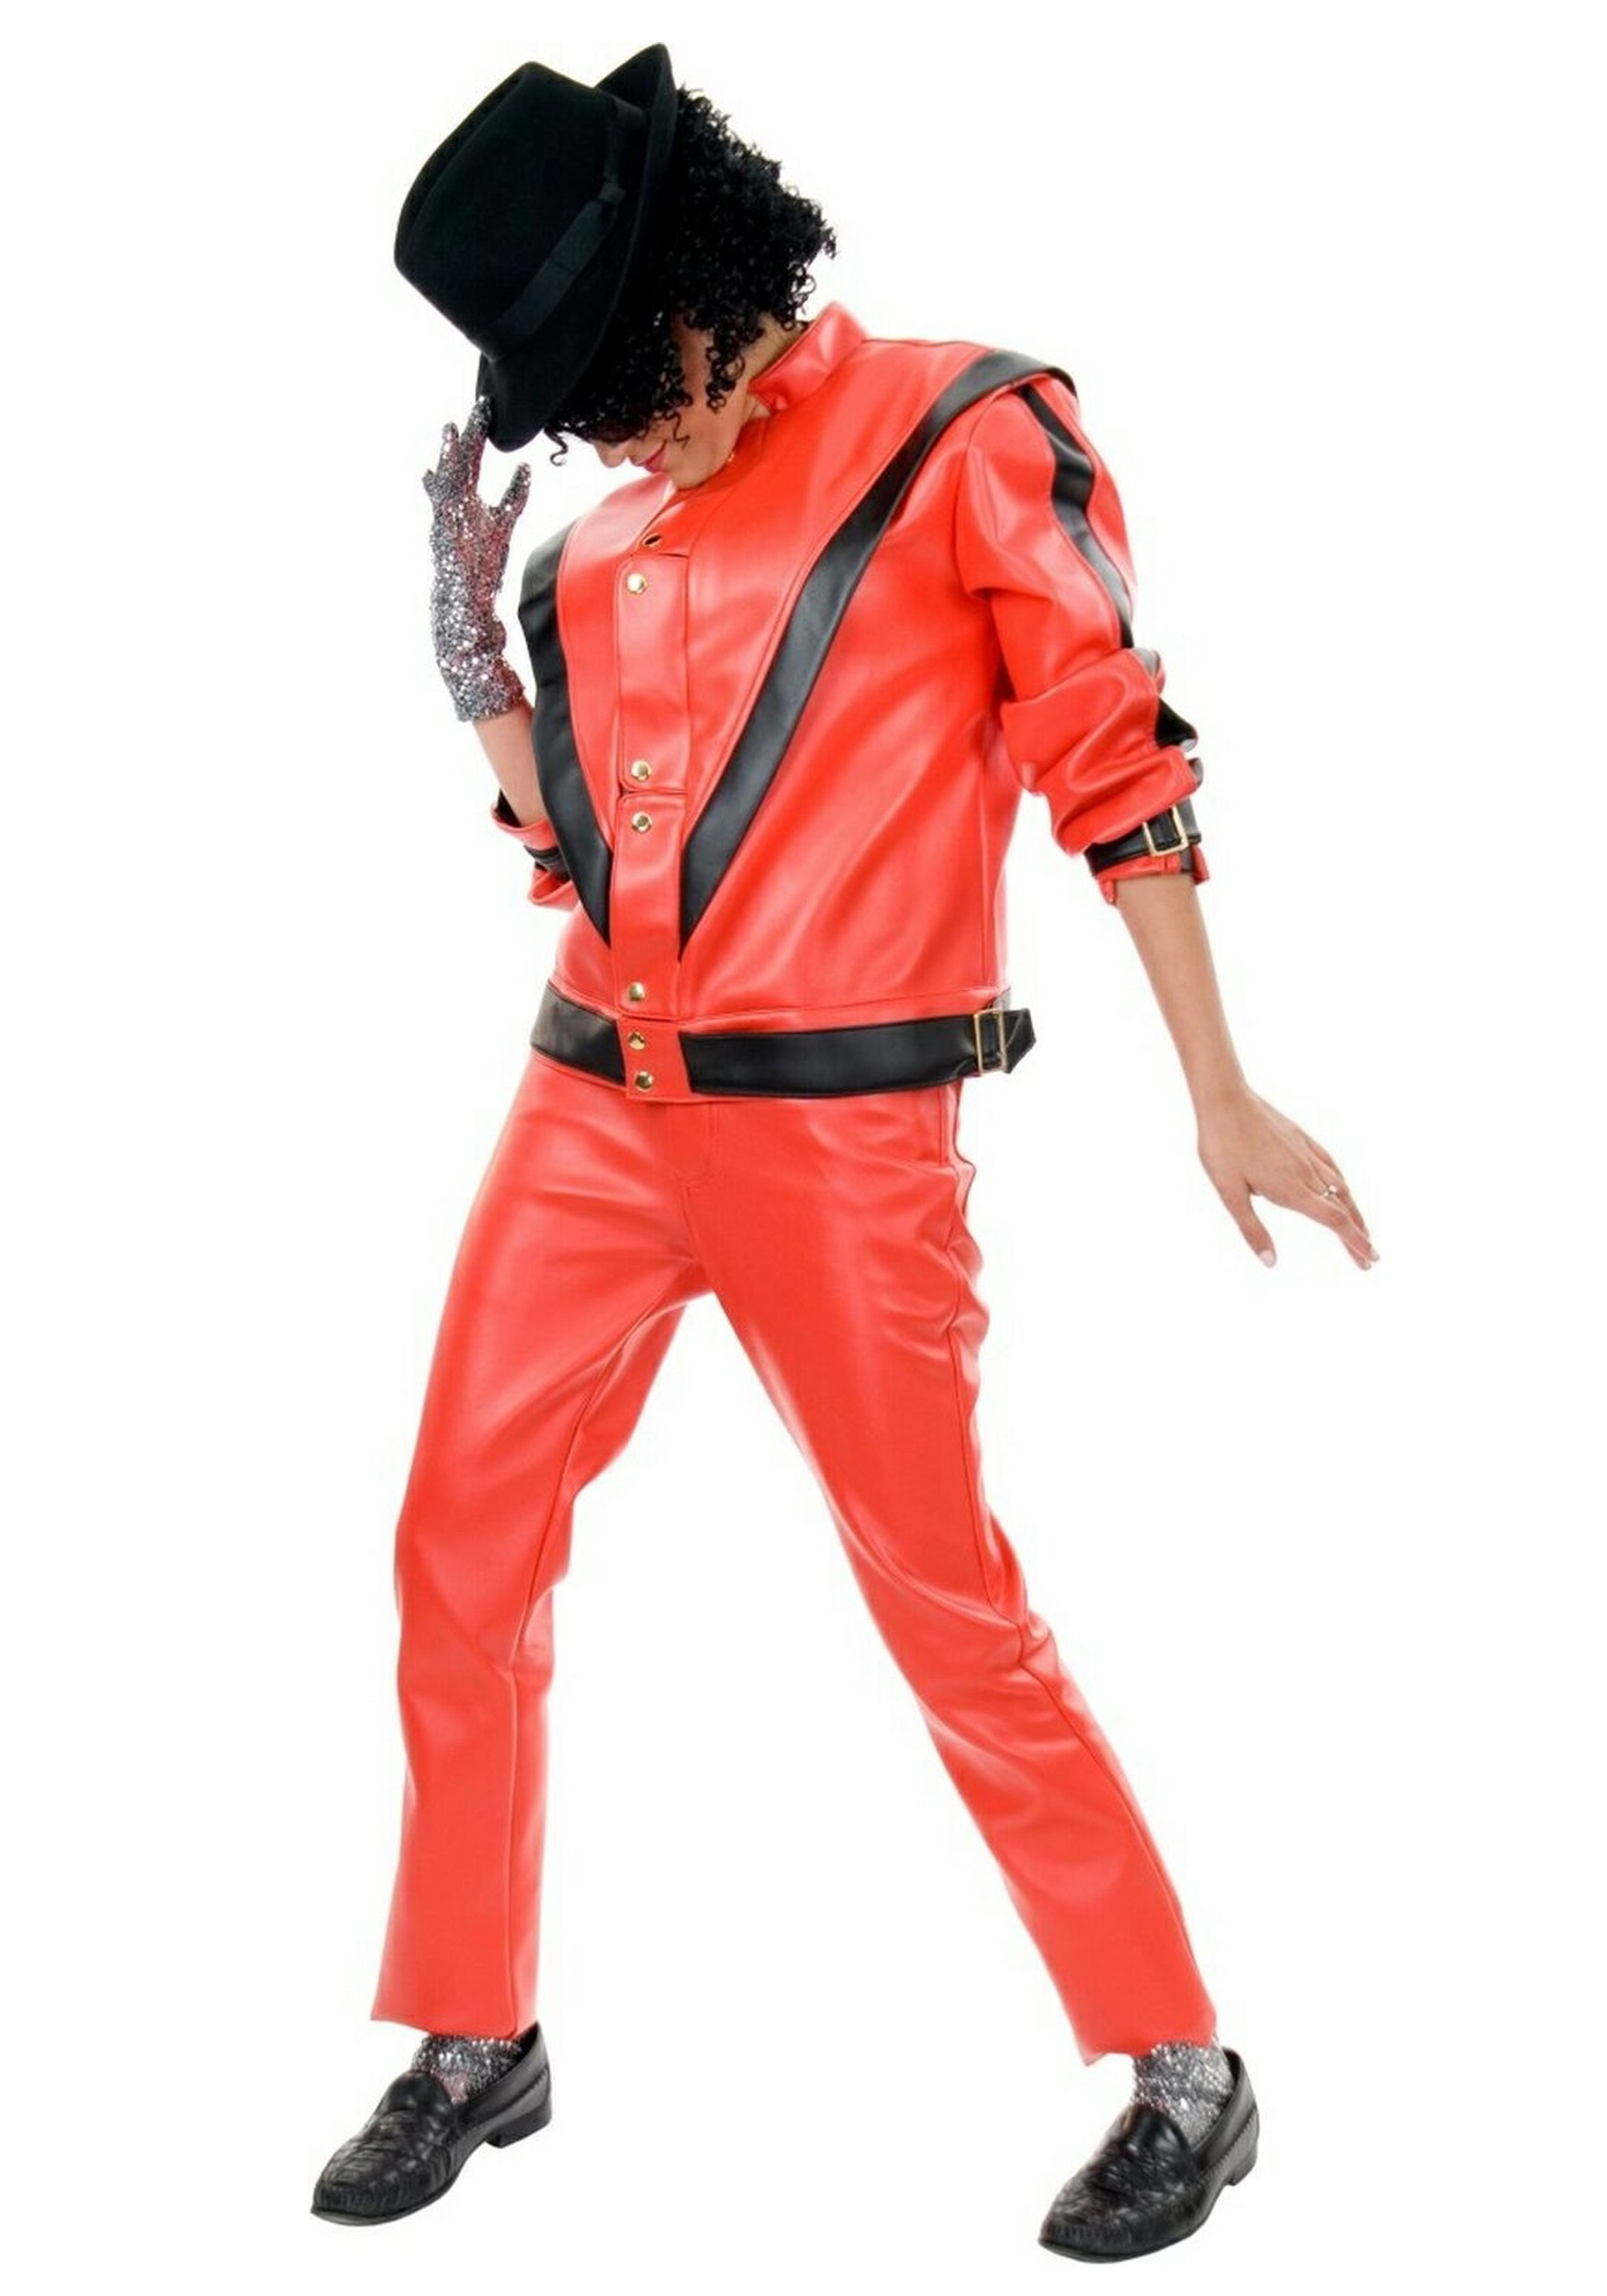 Amazoncom Michael Jackson Red Thriller Jacket Adult